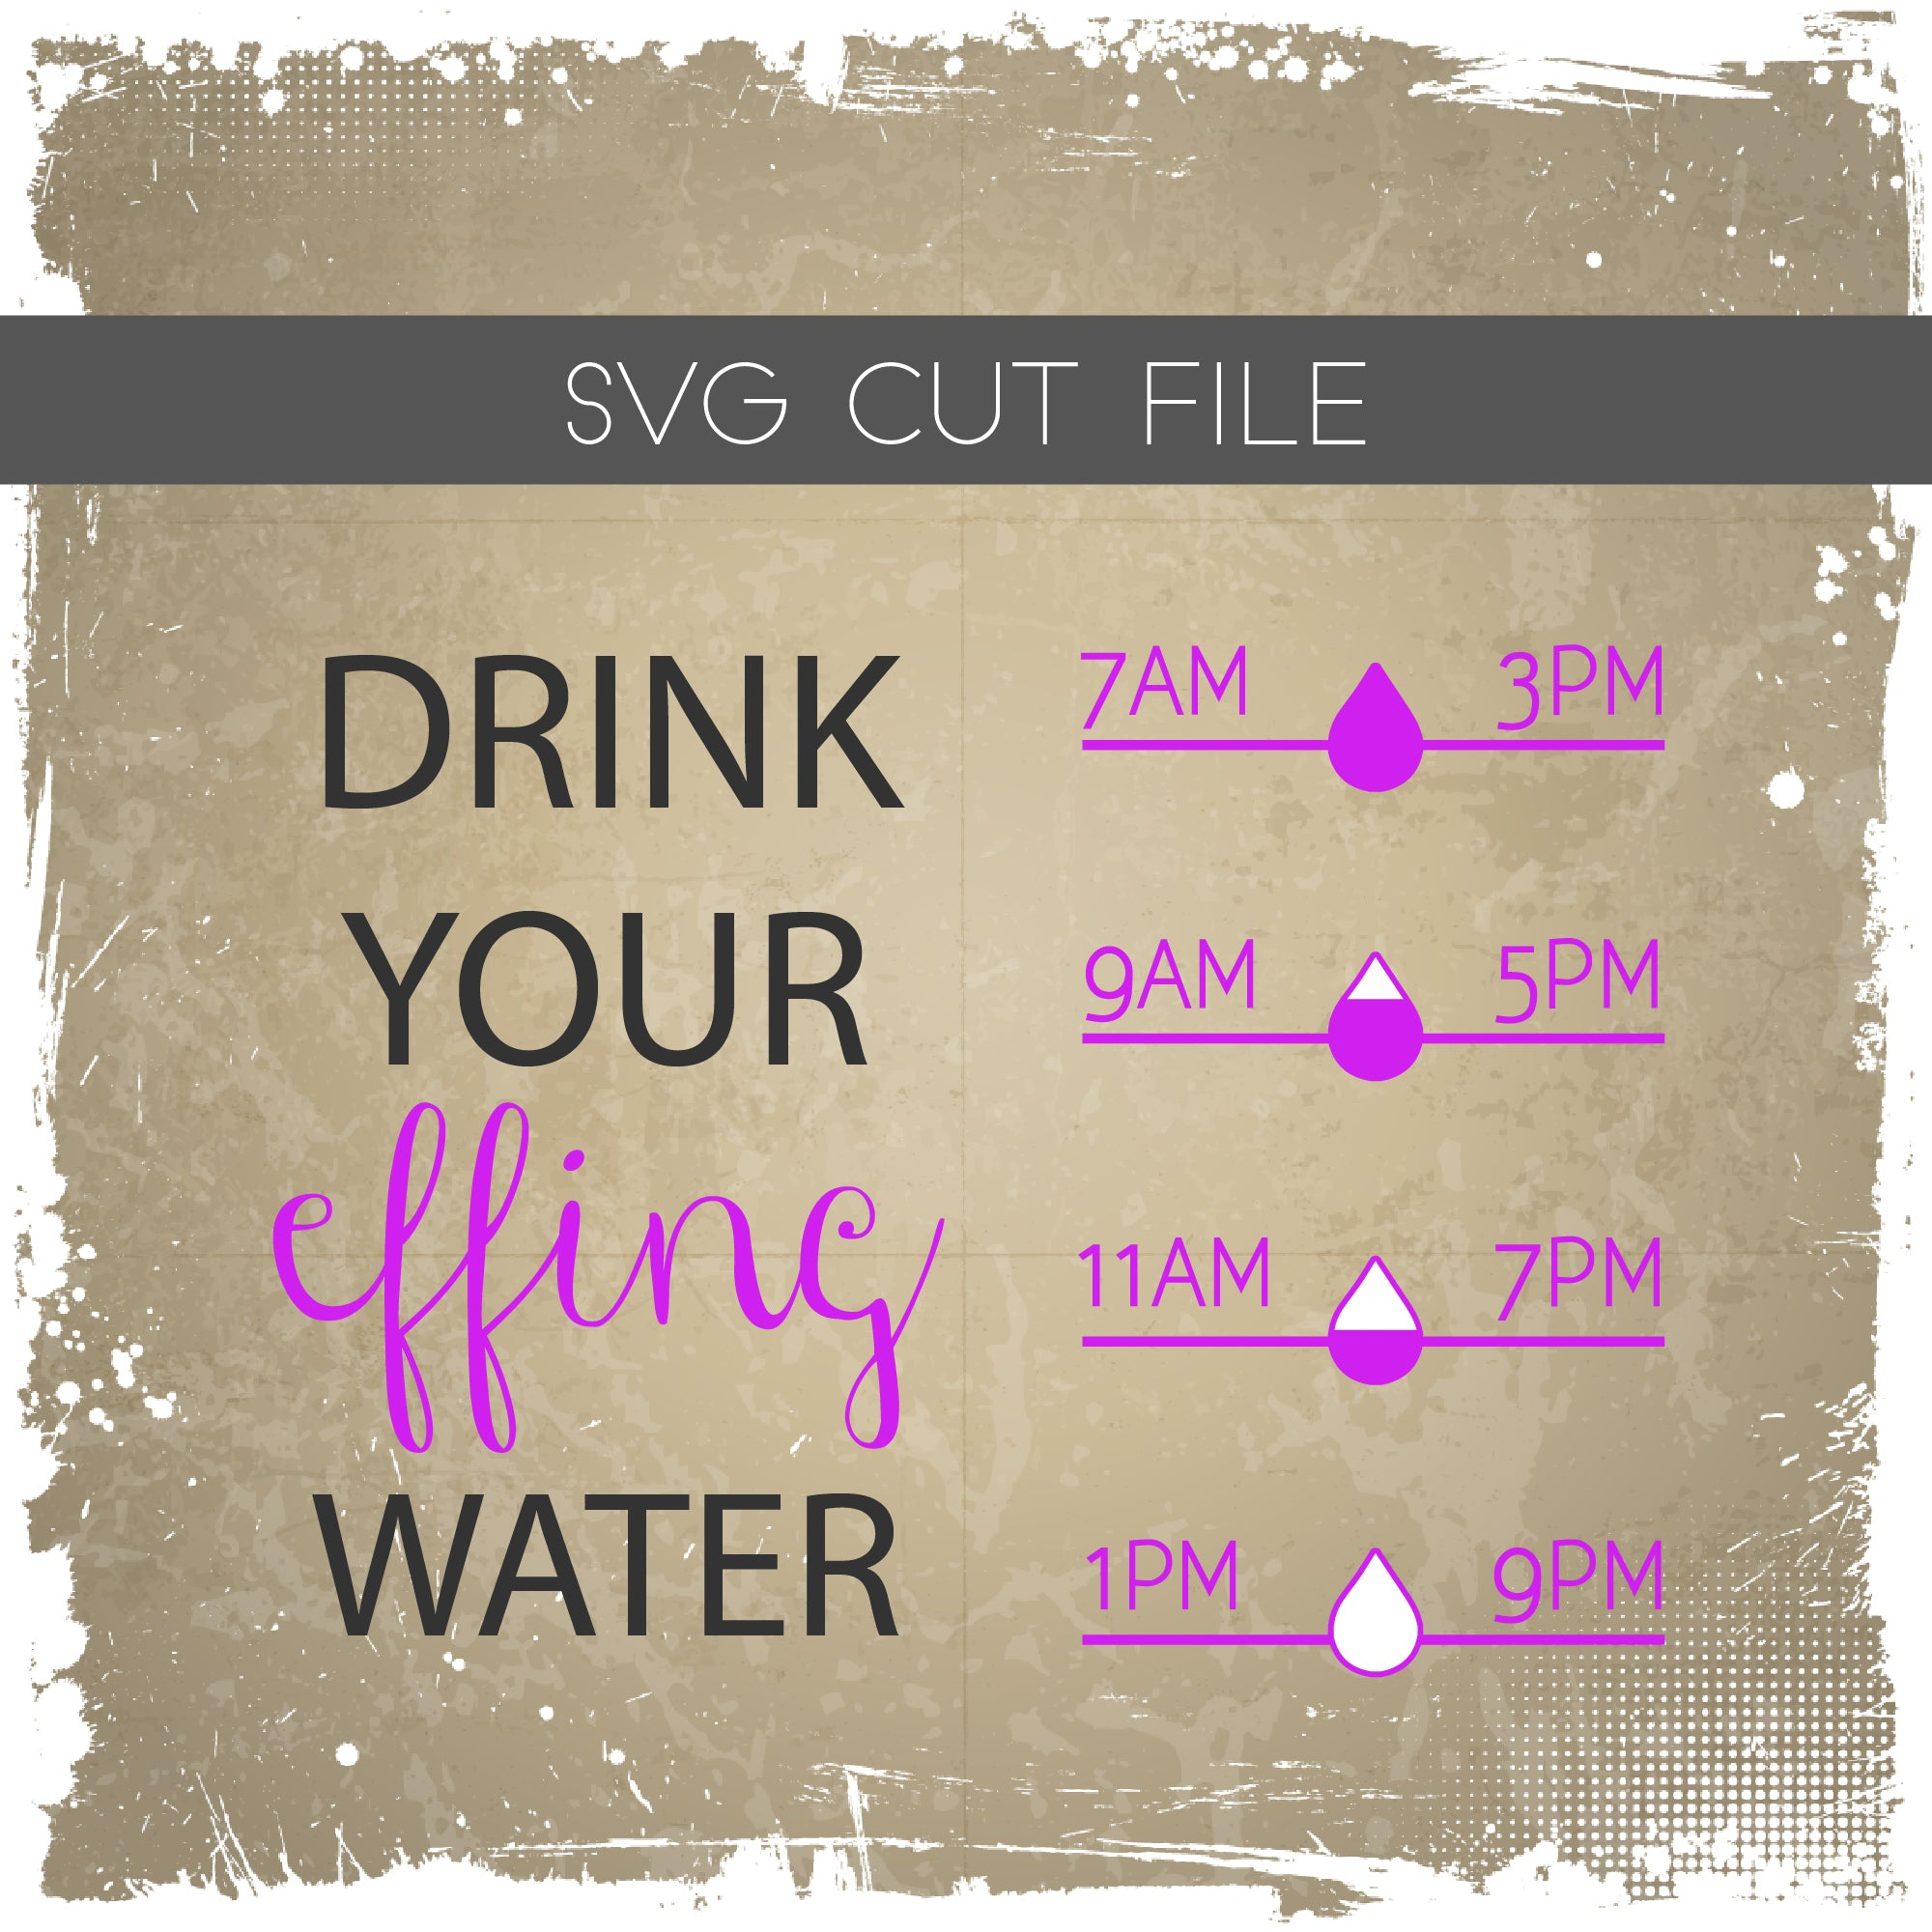 Drink Your Effing Water SVG - Drink Your Water SVG - Water Tracker SVG - Fill Lines cut file,Drink Your Water Bottle Tracker,svg,eps,png,dxf